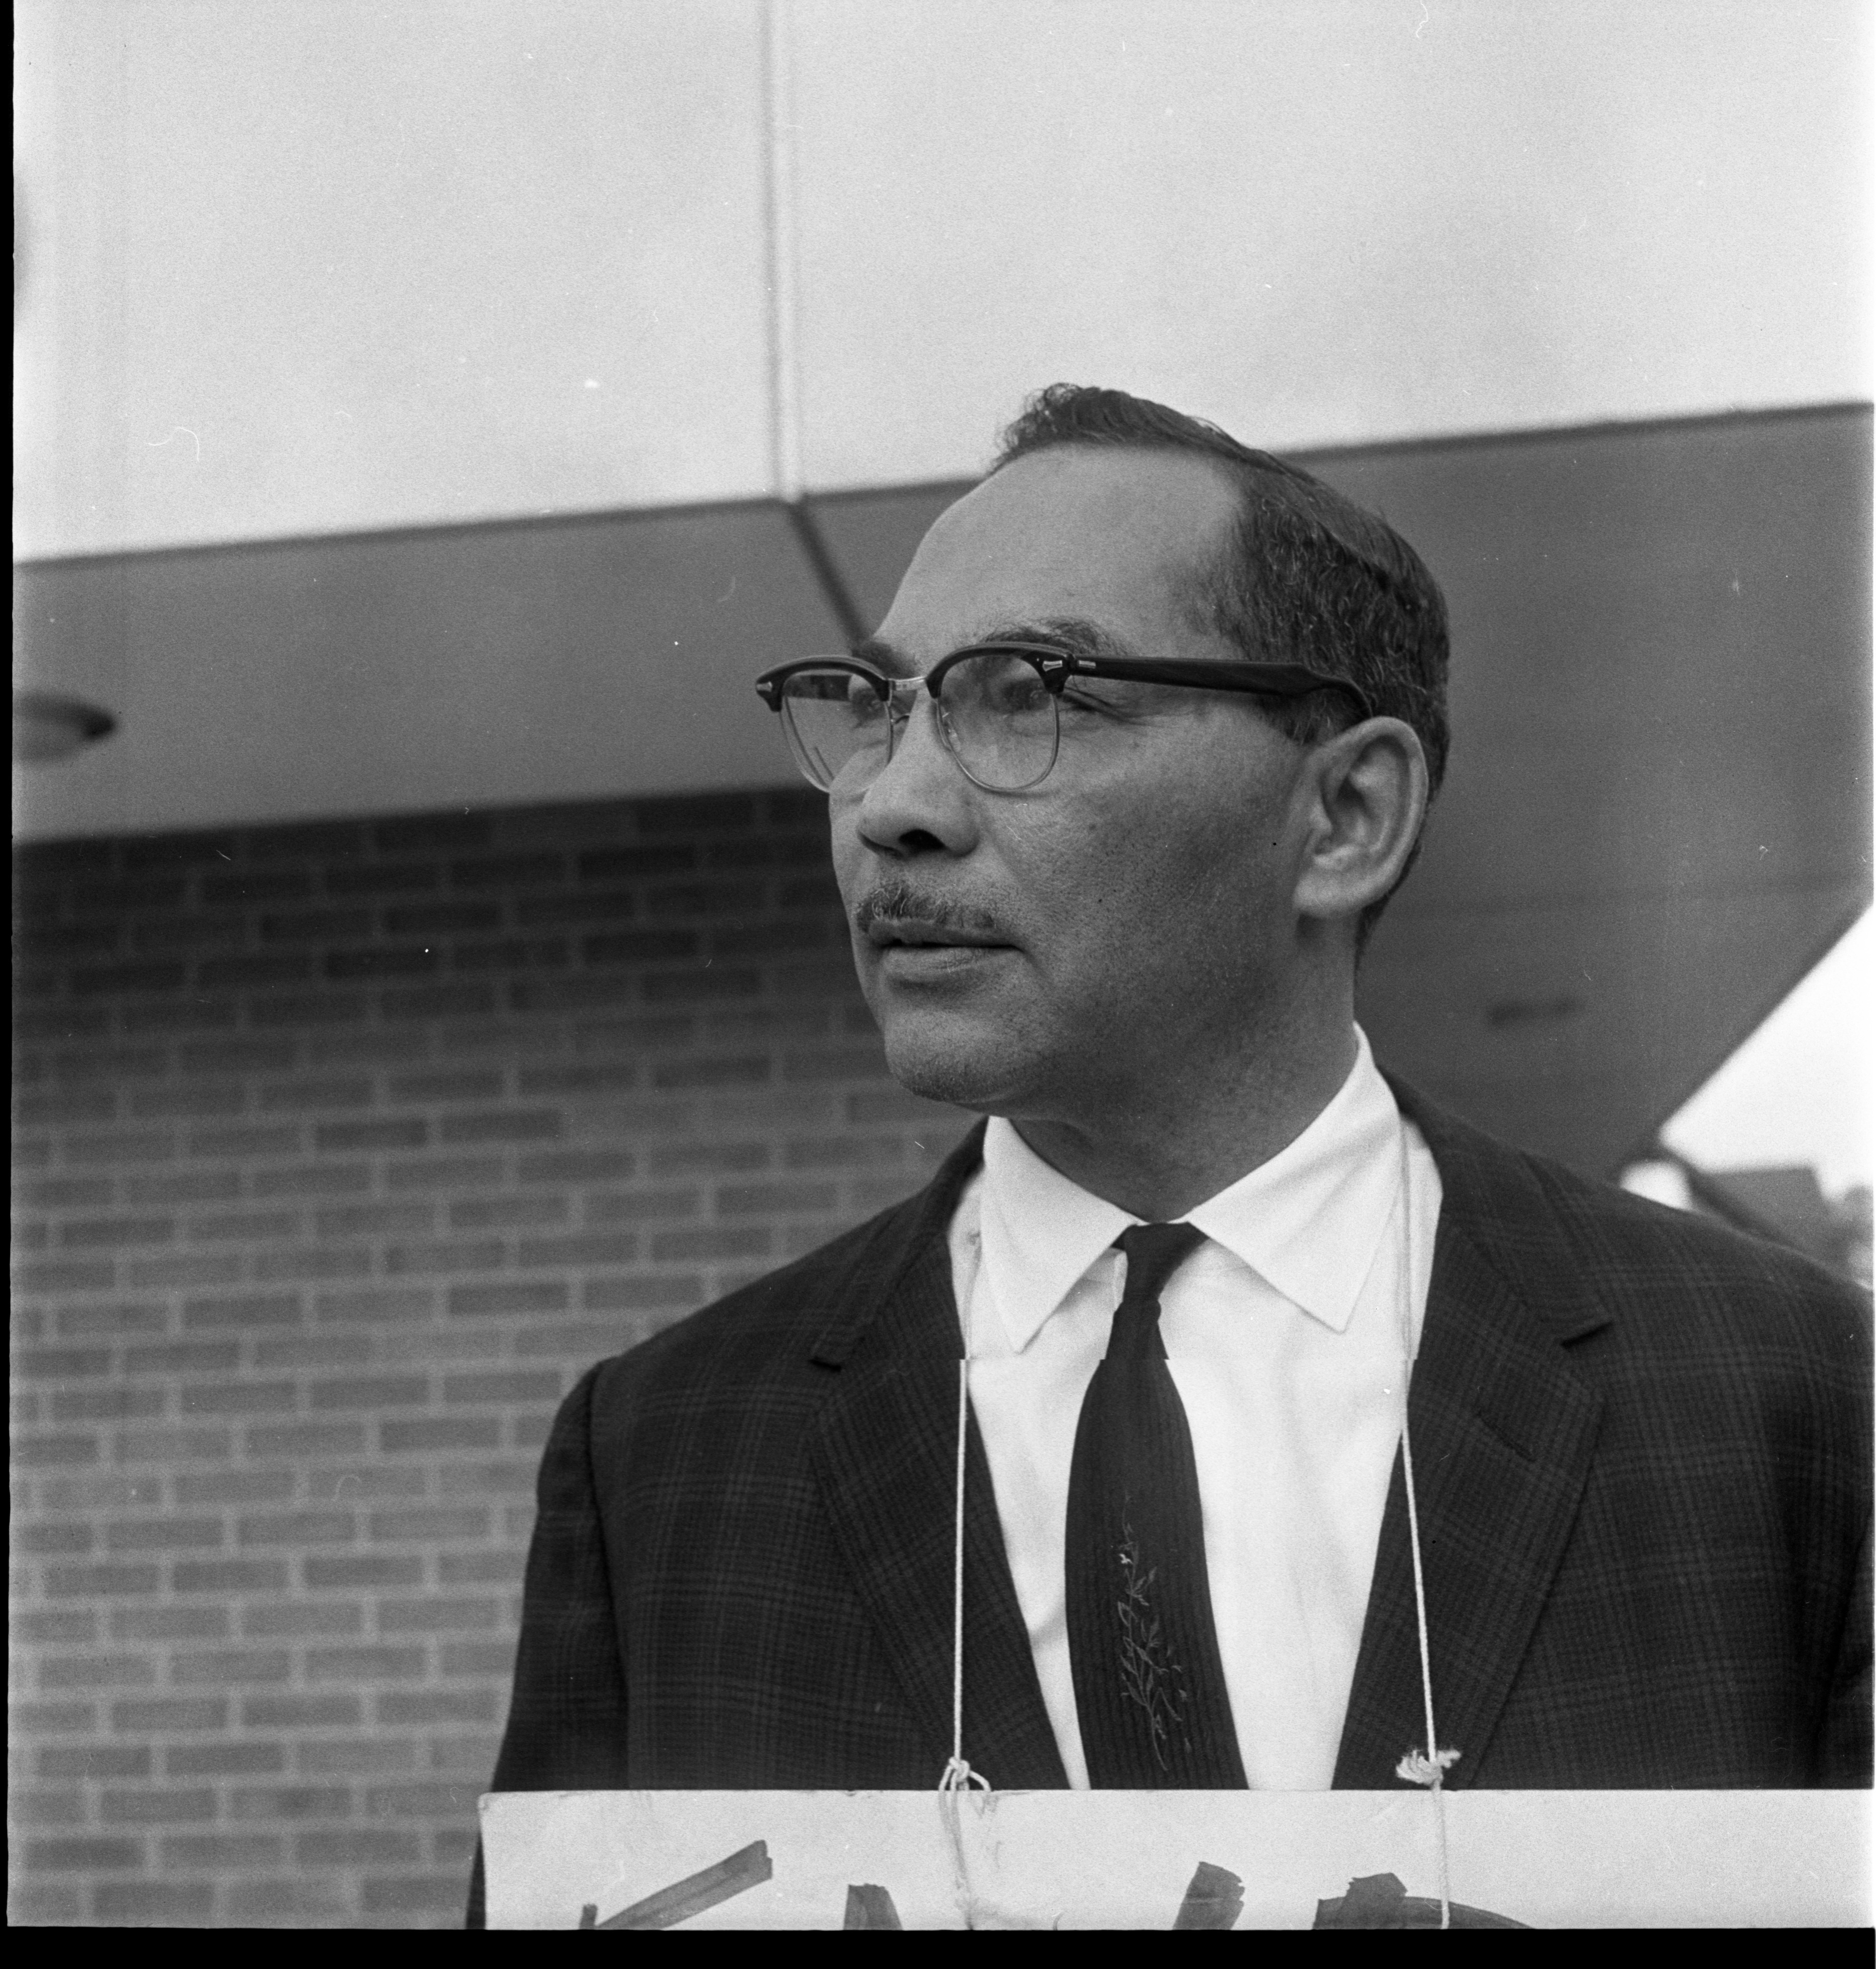 Dr. Albert H. Wheeler Picketing At Ann Arbor City Hall For Fair Housing, July 1963 image